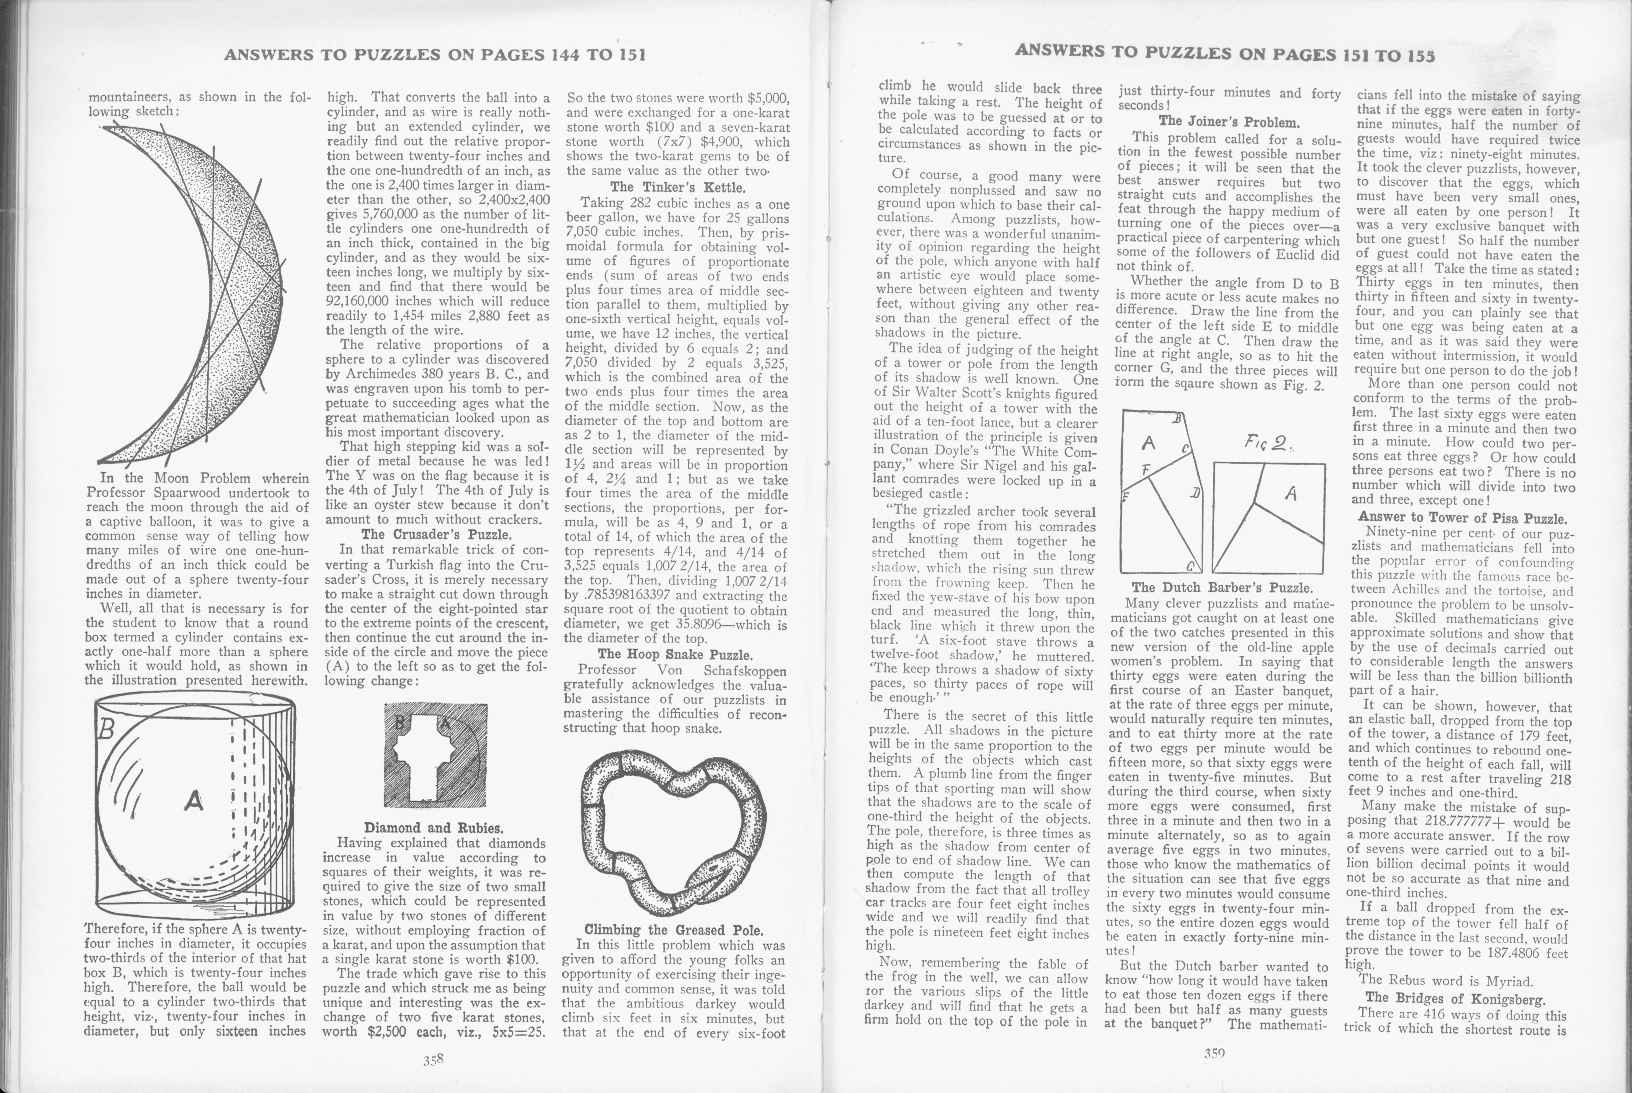 Sam Loyd - Cyclopedia of Puzzles - page 358-359